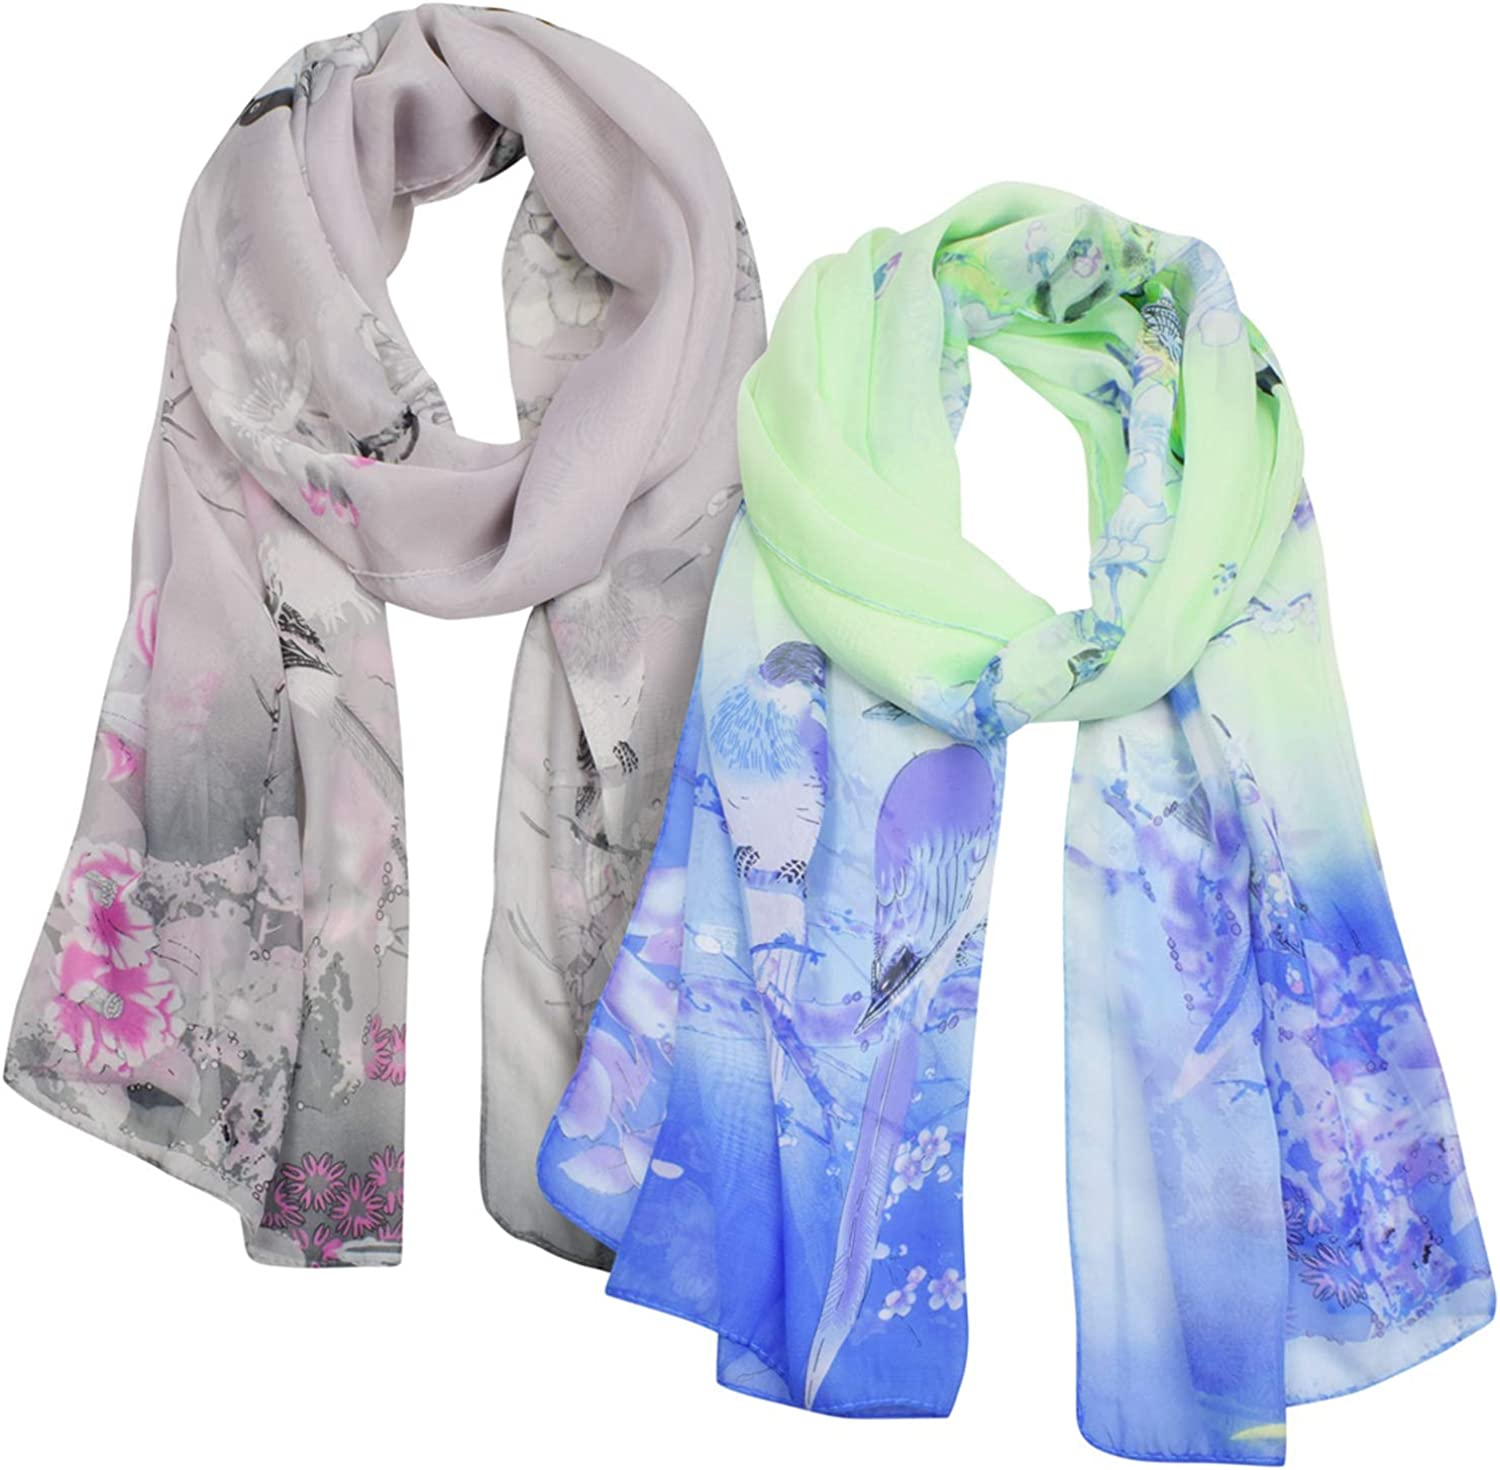 heekpek Wrap Scarf Shawl Stole Flower Head Band Printed Silk Feeling Lightweight To Any Outfit All Year Around Clothing Accessory